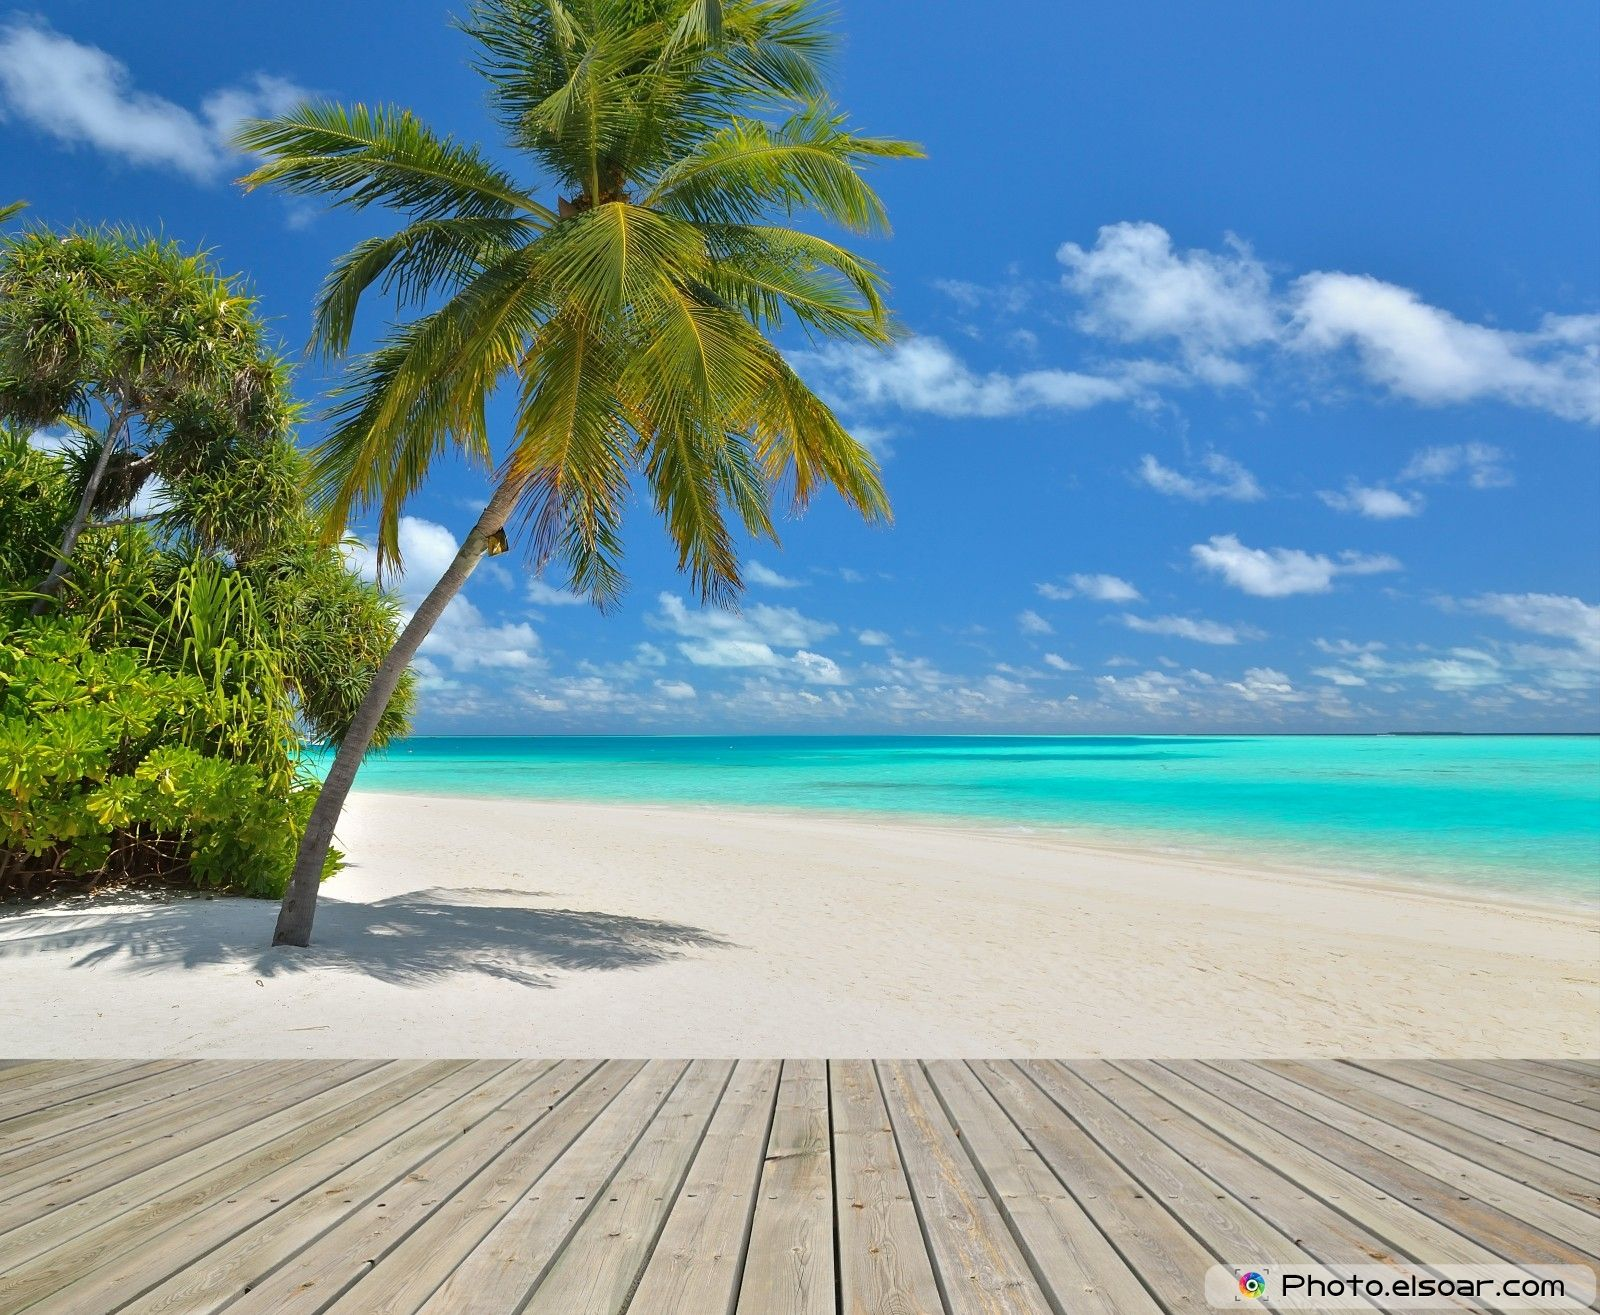 Tropical paradise beach with empty wooden pier Scenic